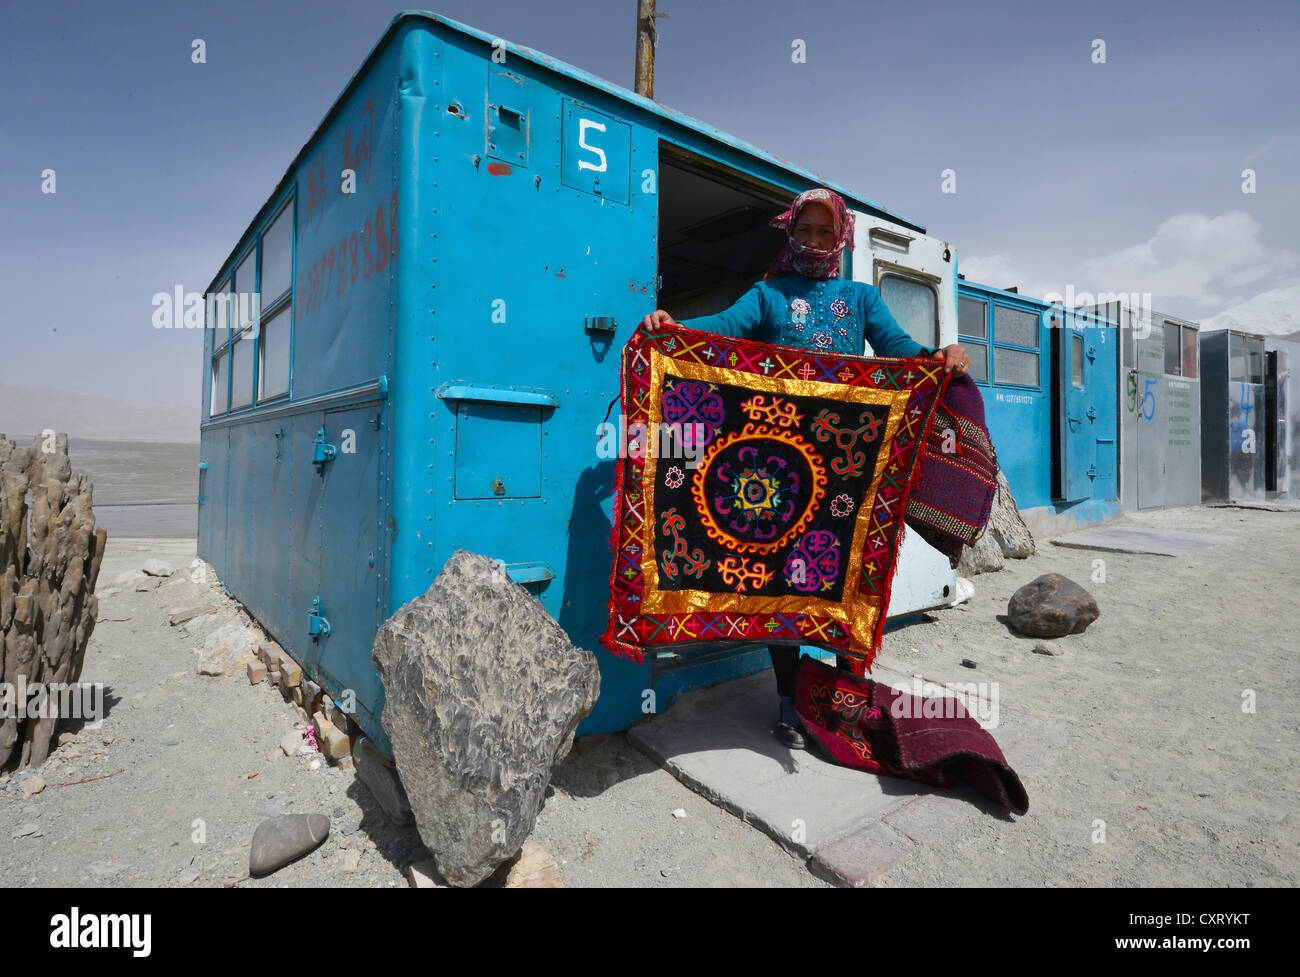 Kazakh woman showing a hand-woven, embroidered wall carpet, simple blue containers, house boxes, storage containers, - Stock Image